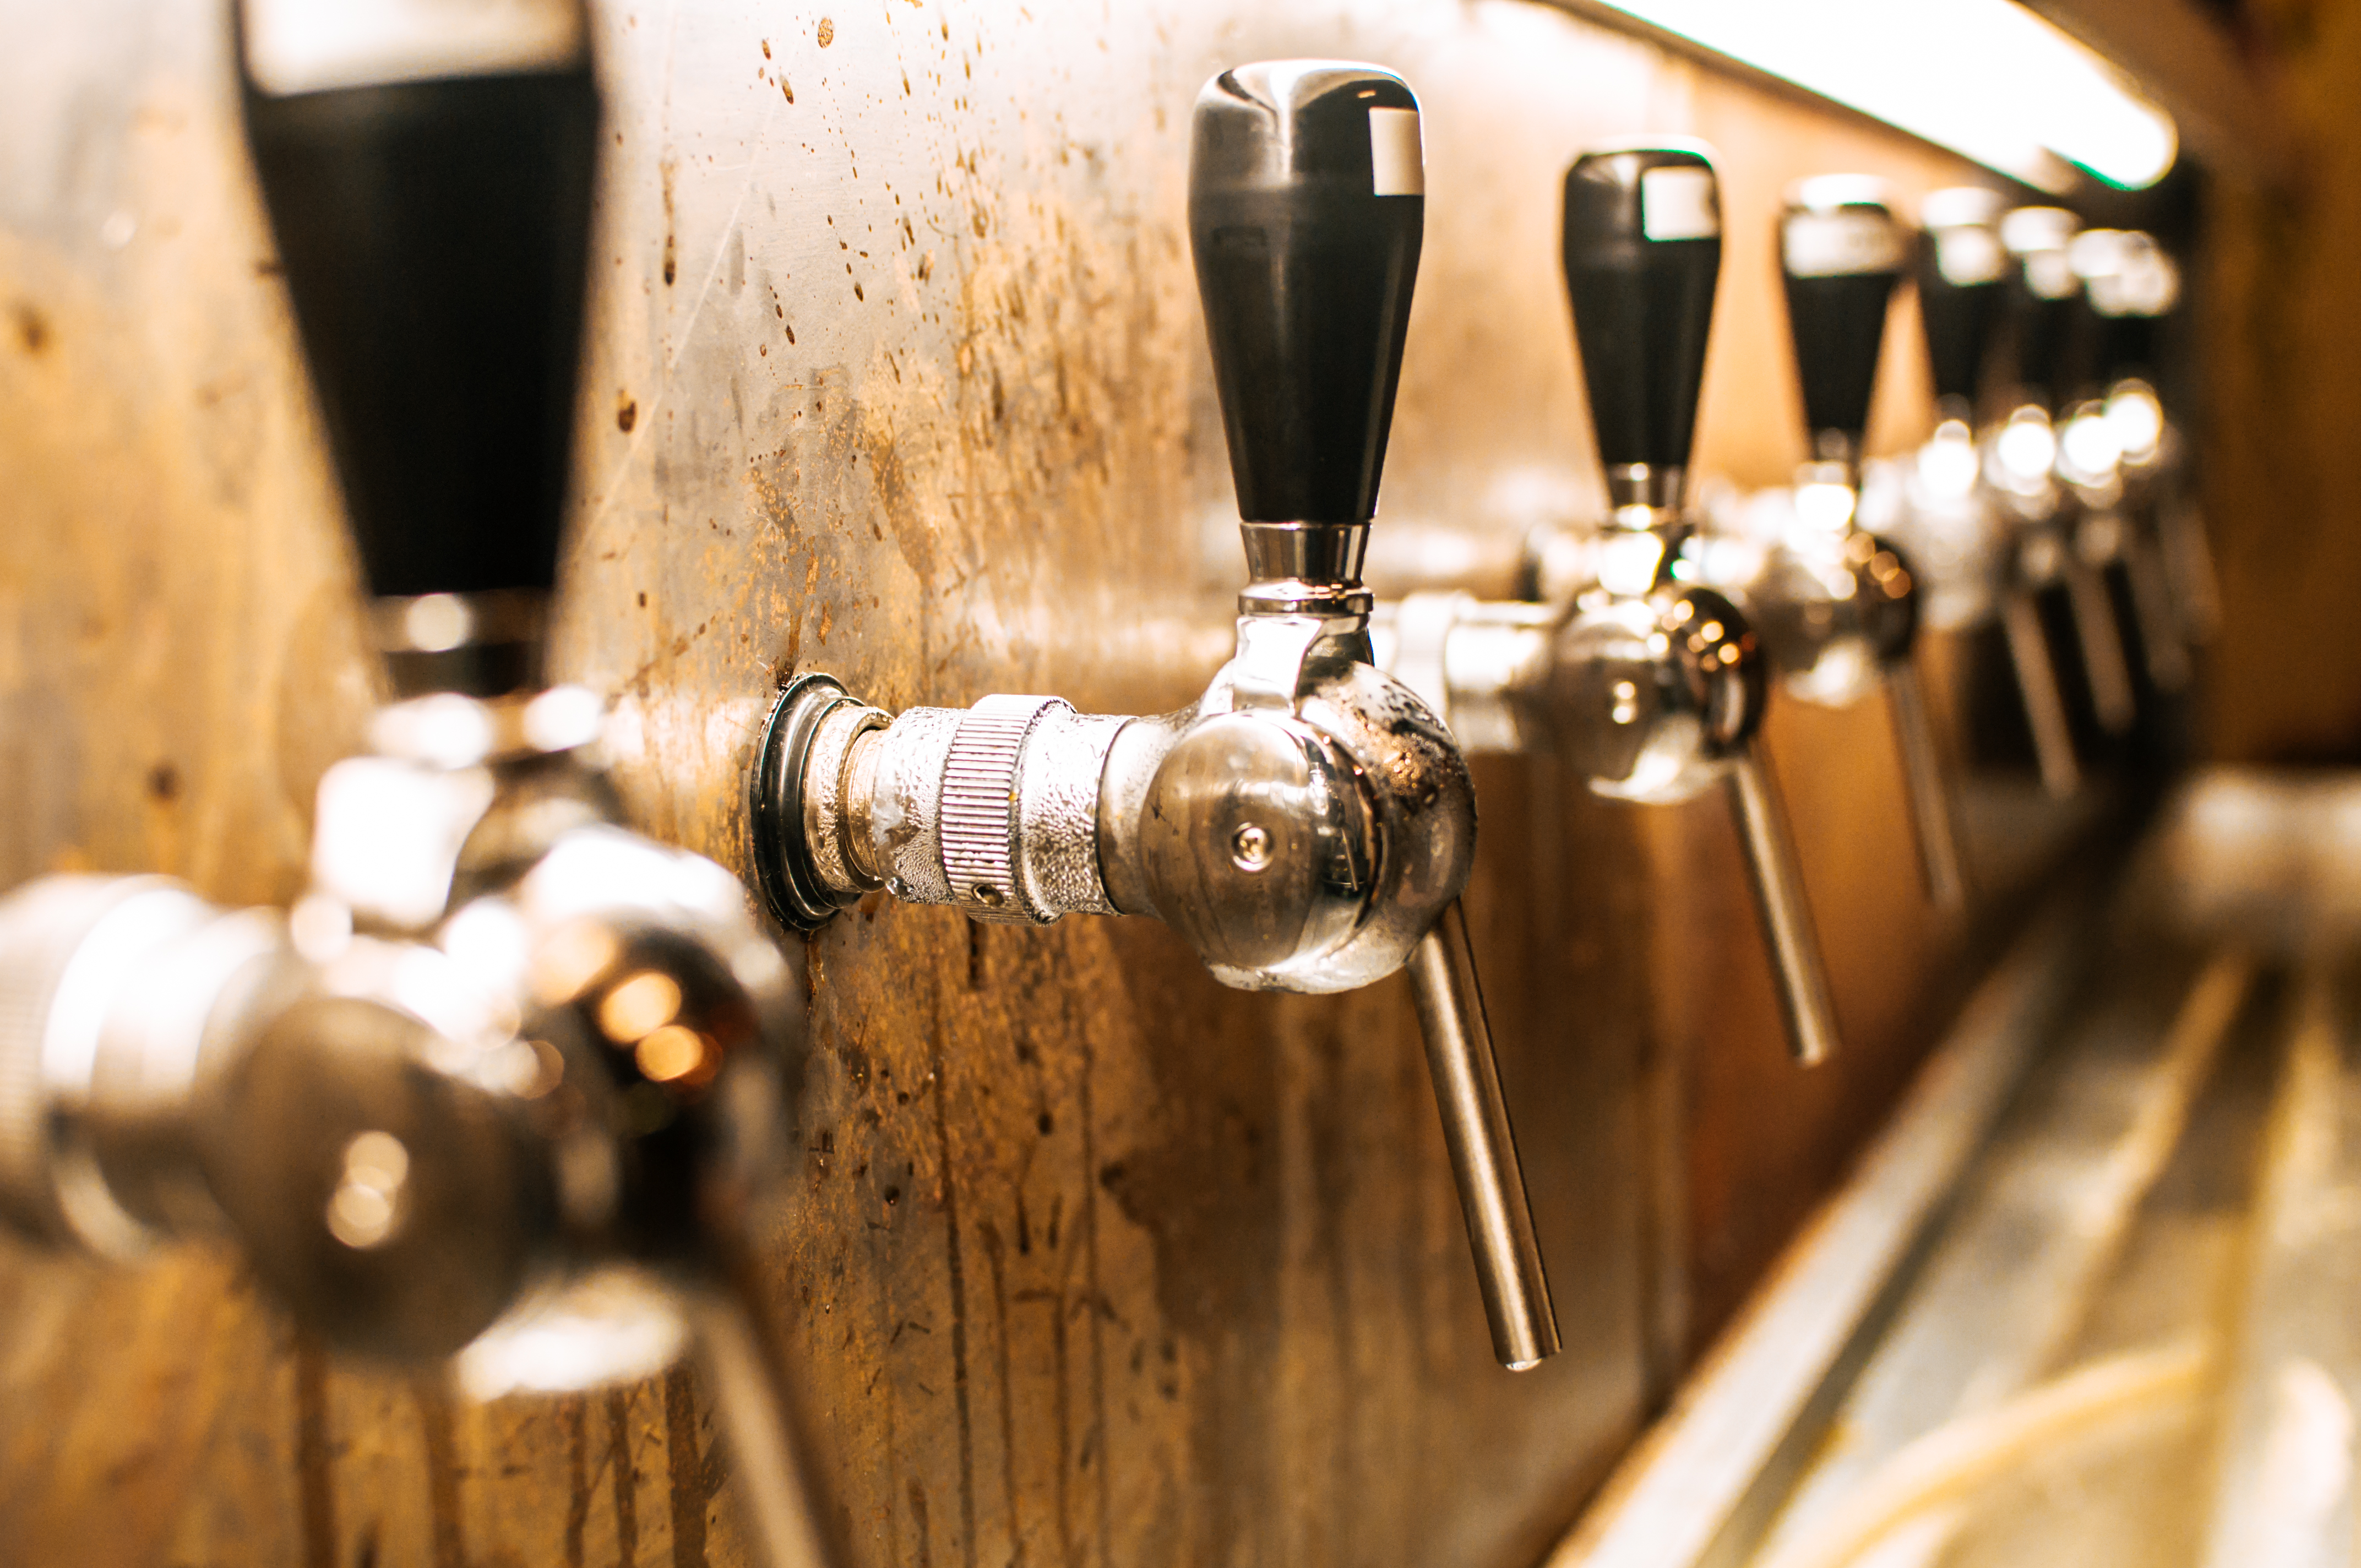 Beer taps in brewery